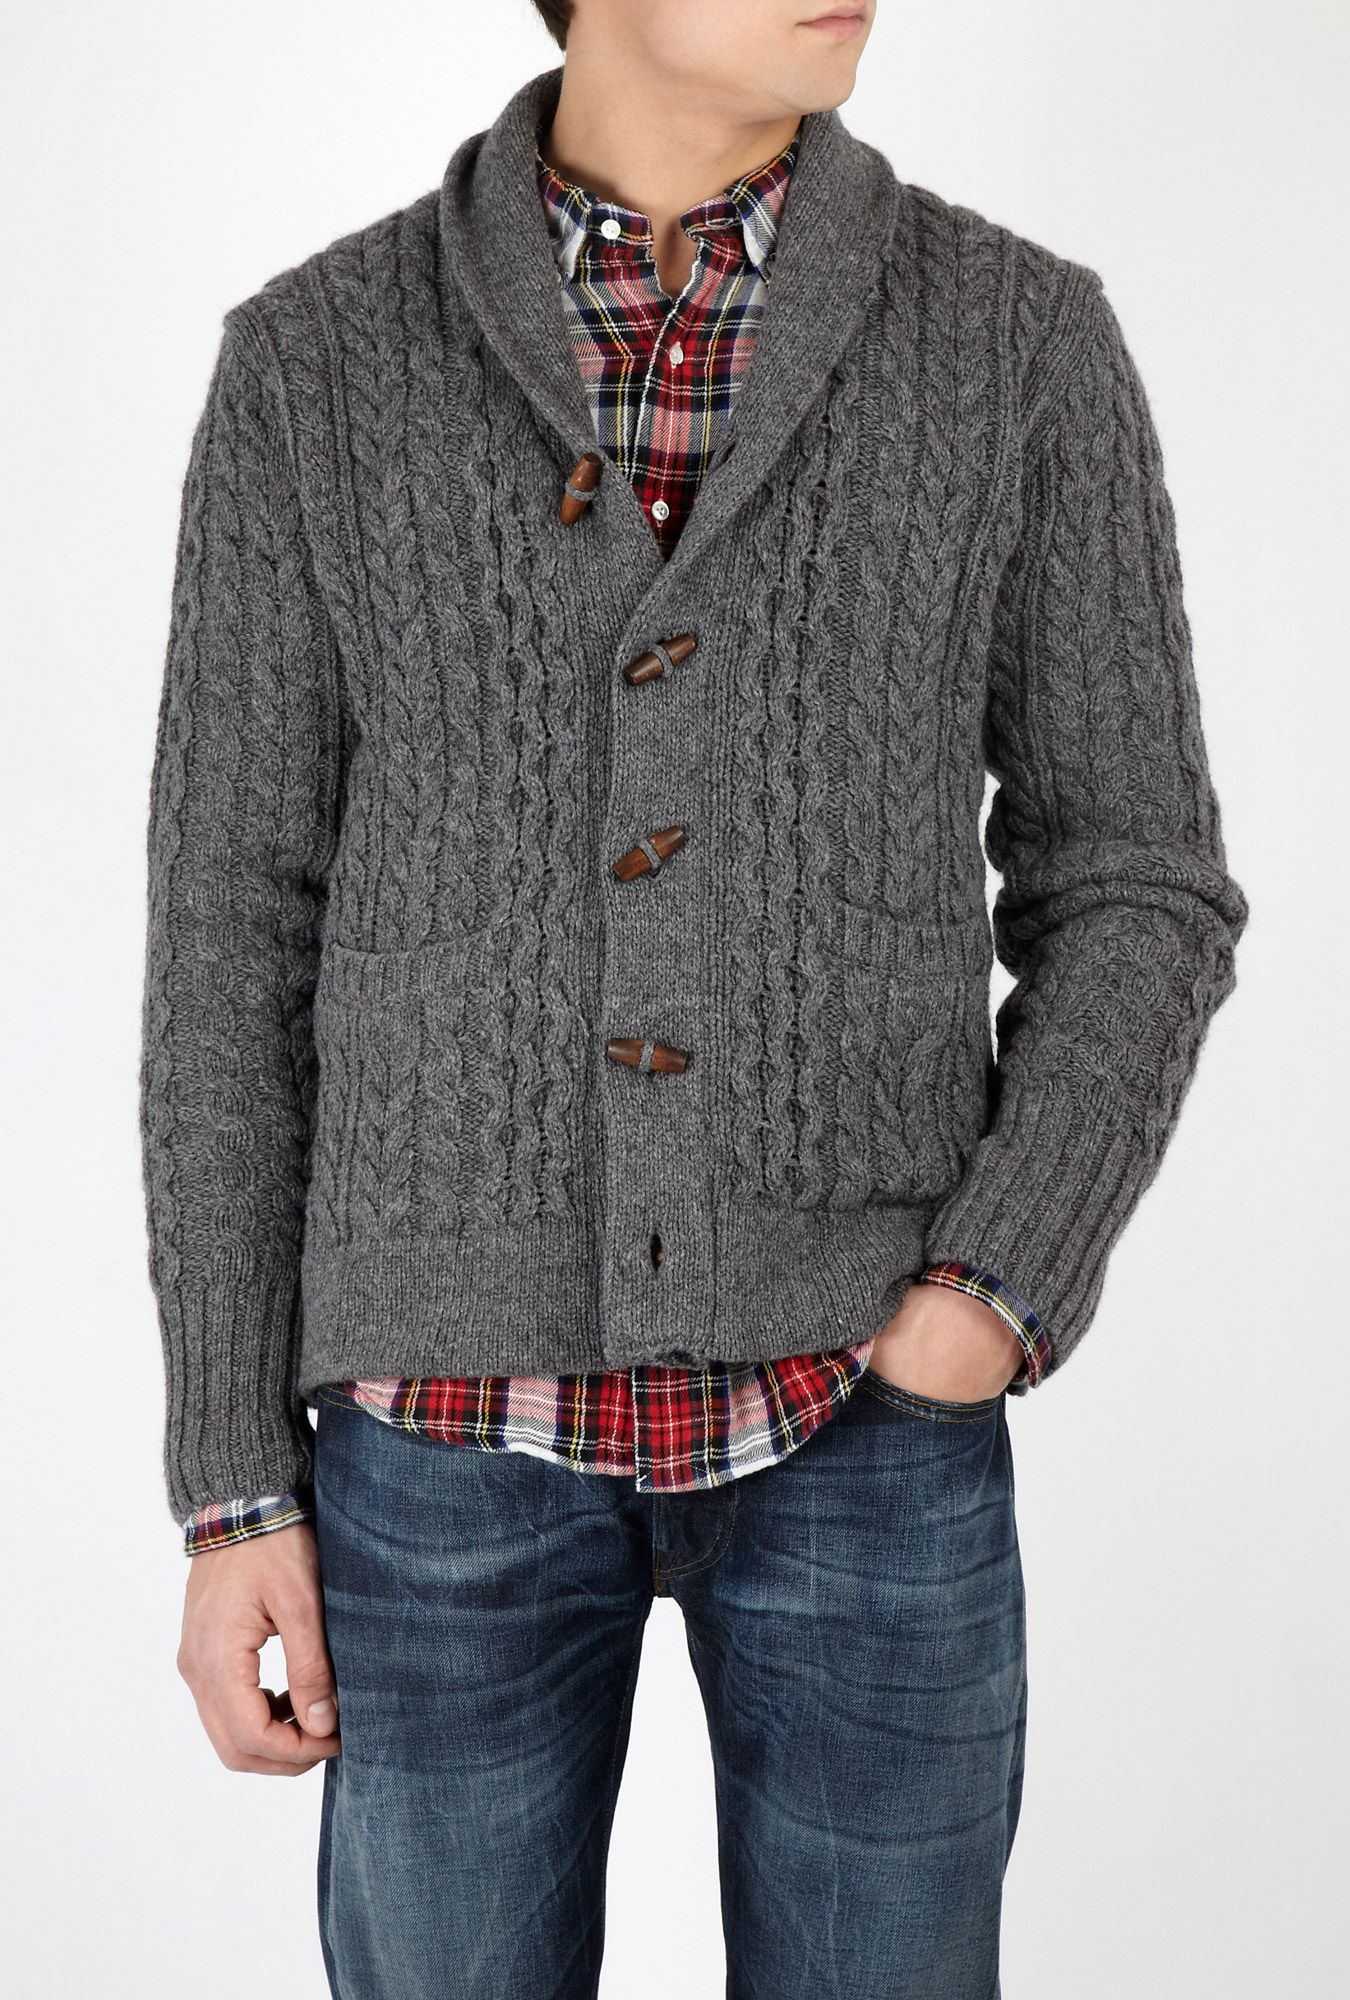 Grey Wool Cable Toggle Shawl Cardigan by Levi's Vintage Clot ...